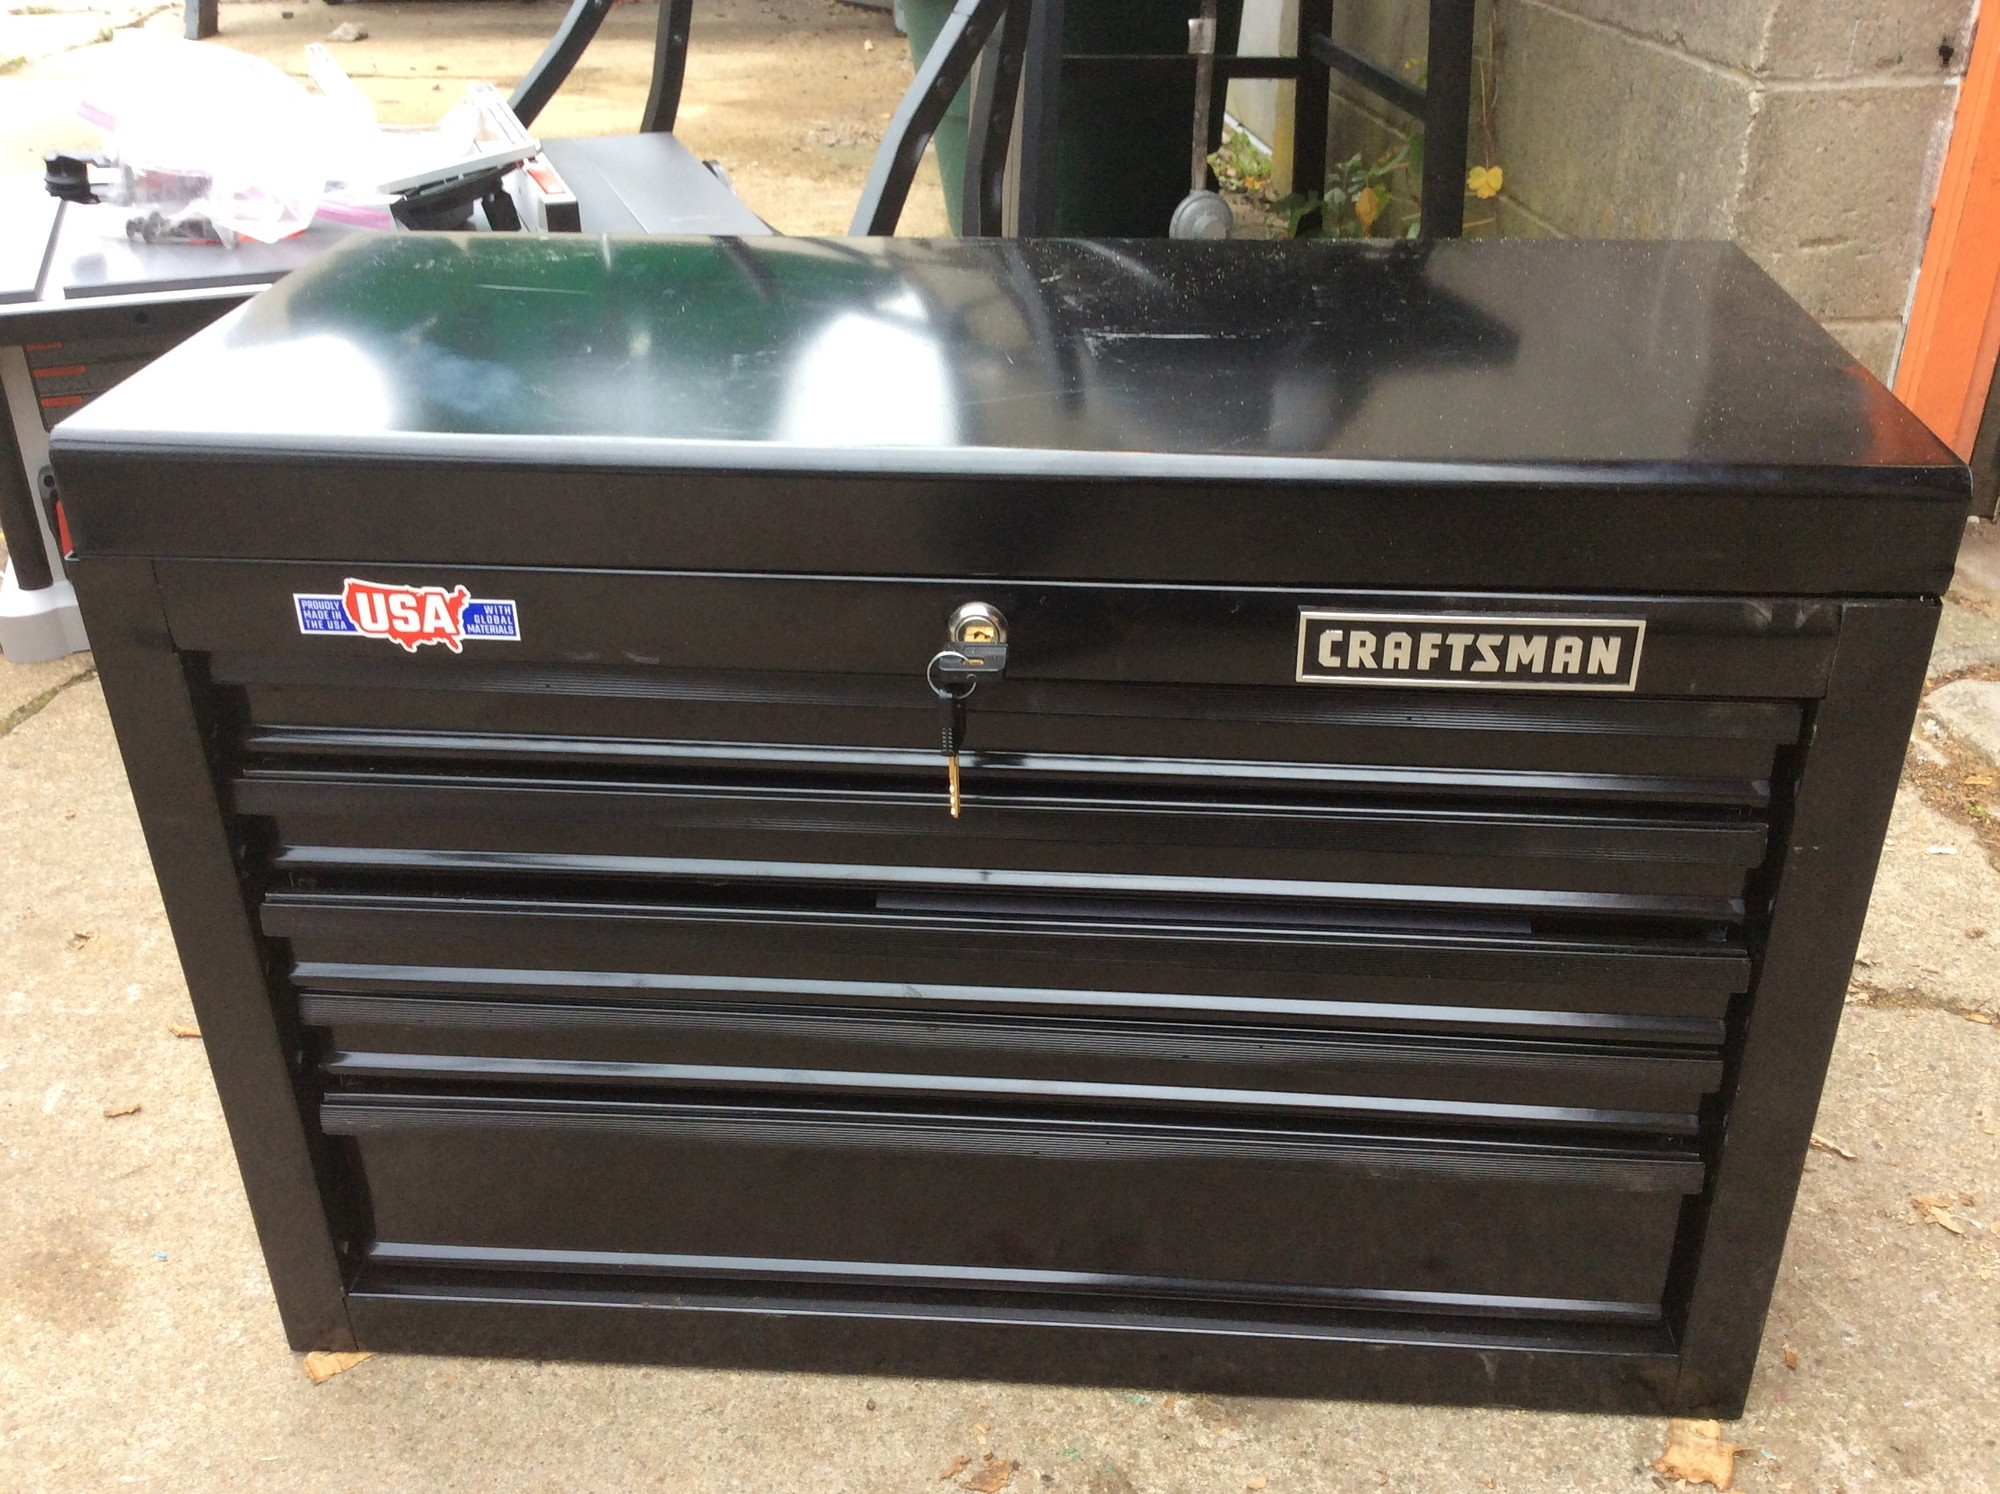 CRAFTSMAN 1000 Series Black 26-in W x 17.25-in H 5-Drawer Ball-Bearing Steel Tool Chest, with Keys